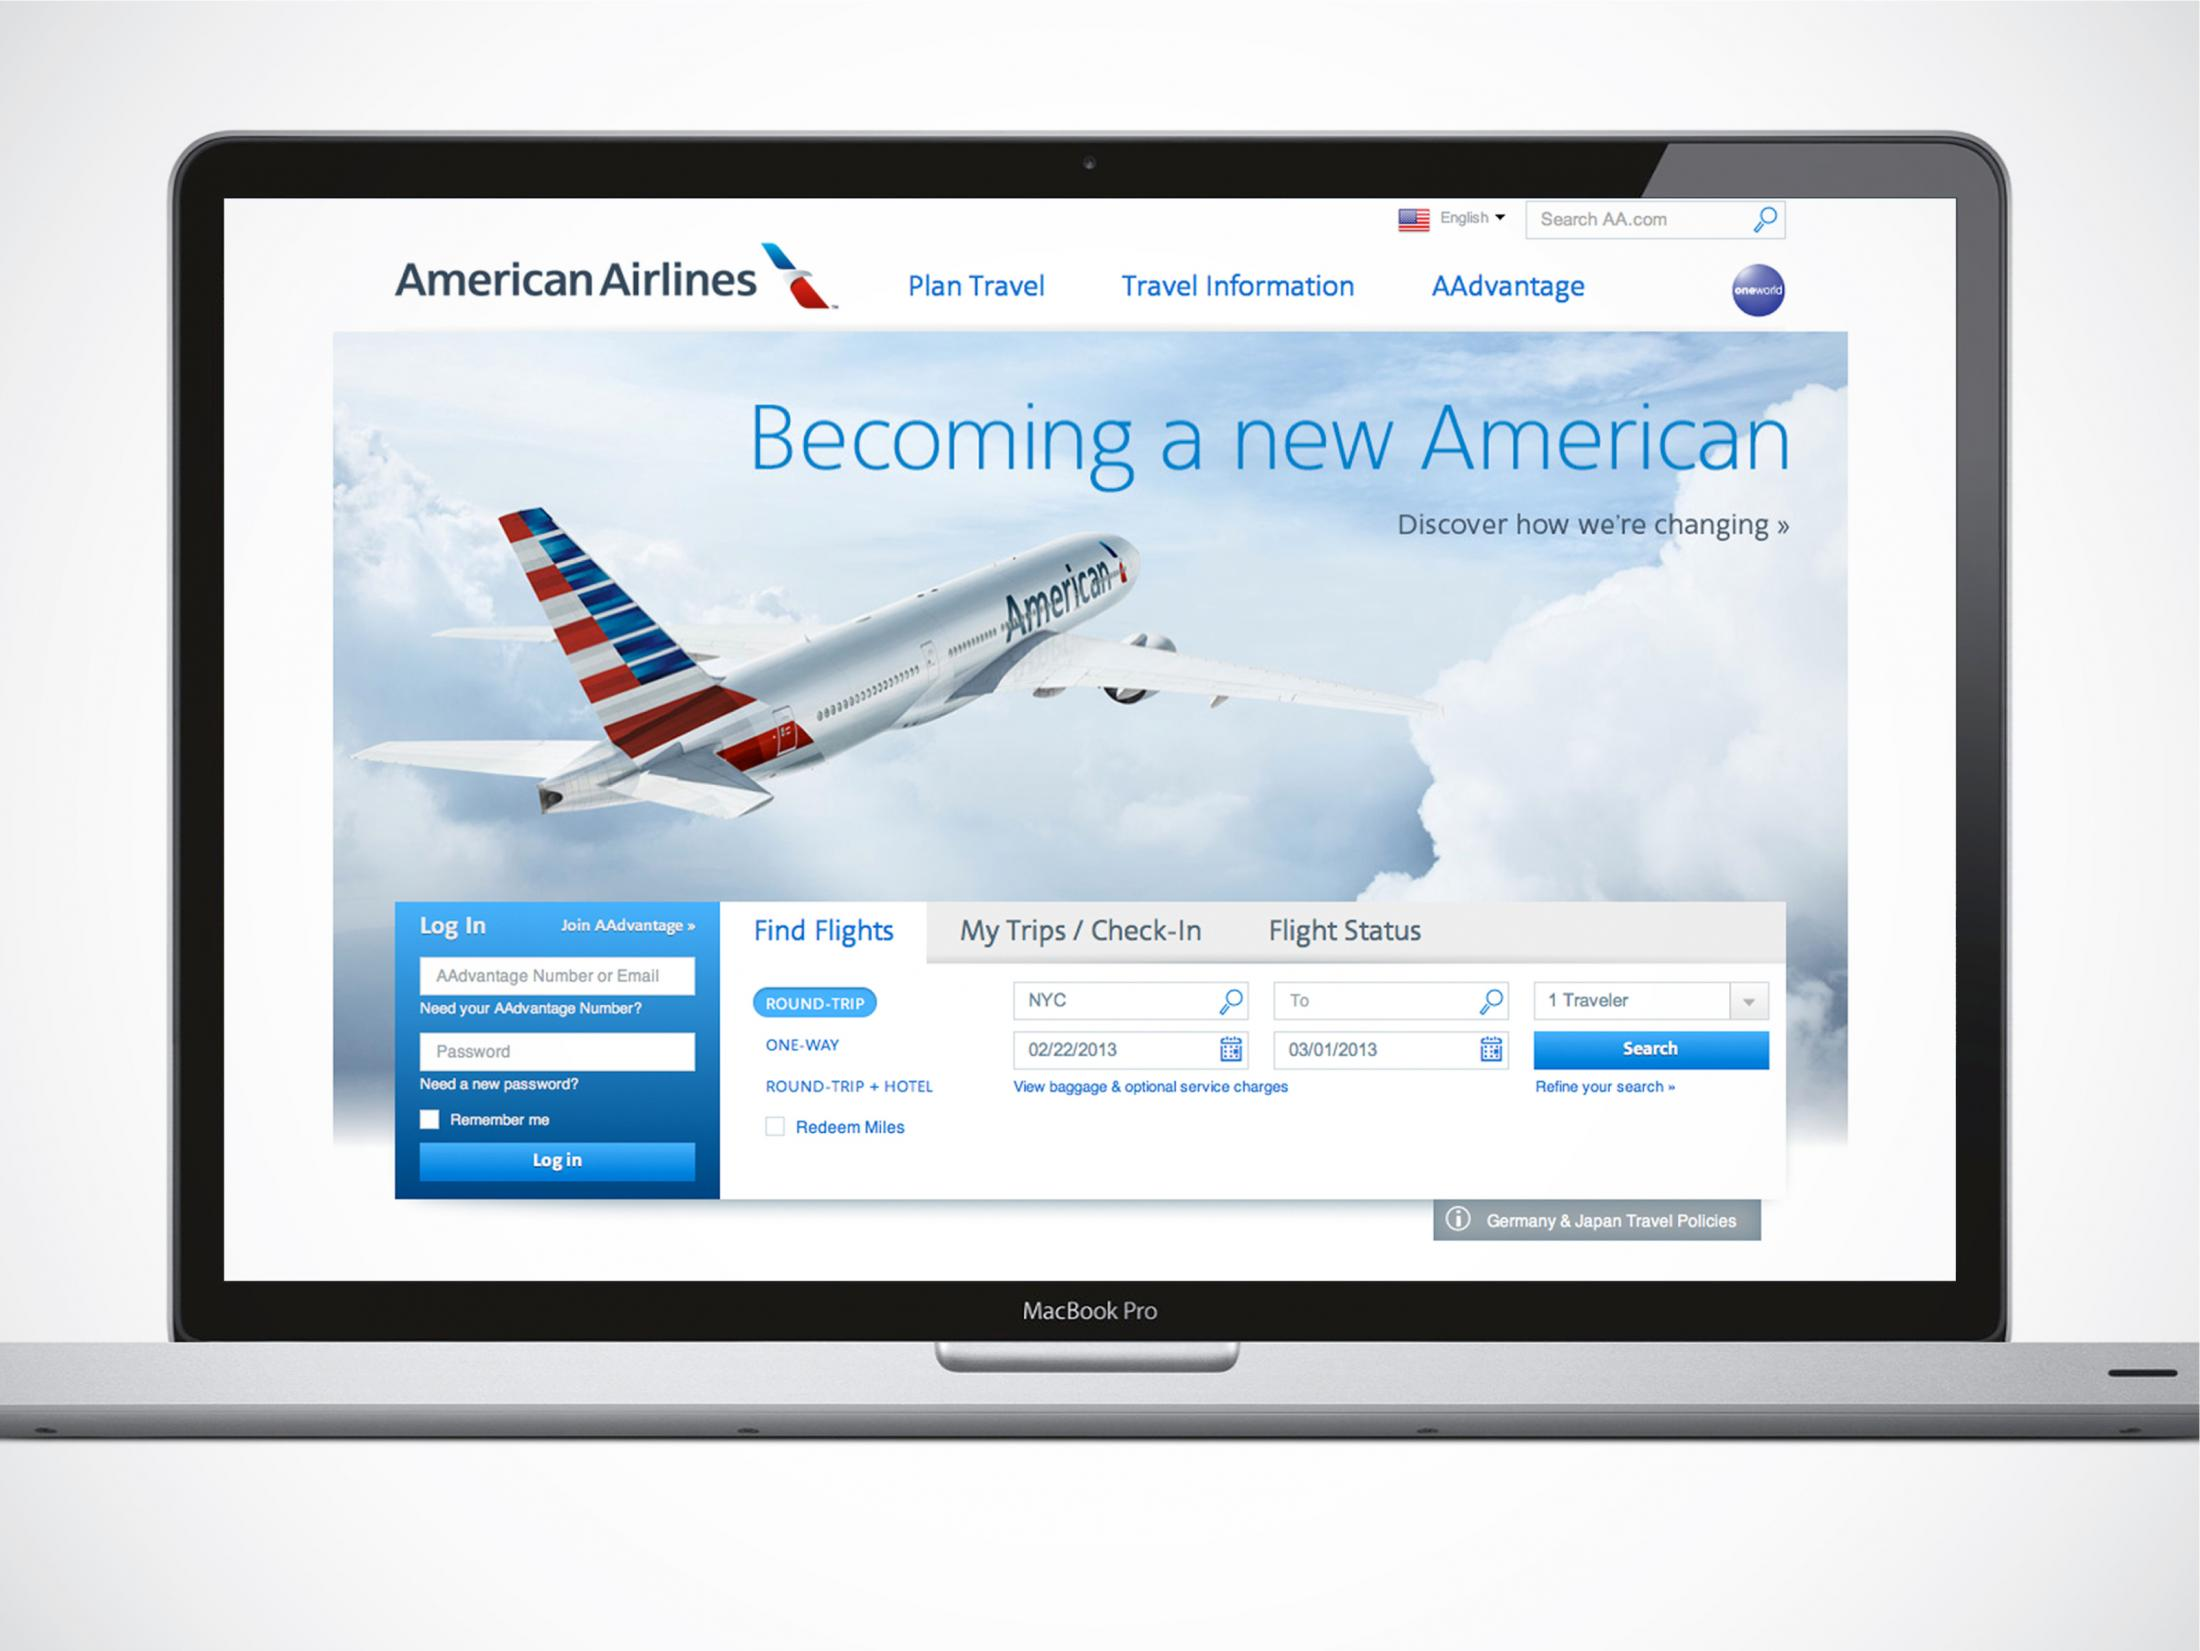 Thumbnail for The new American Airlines